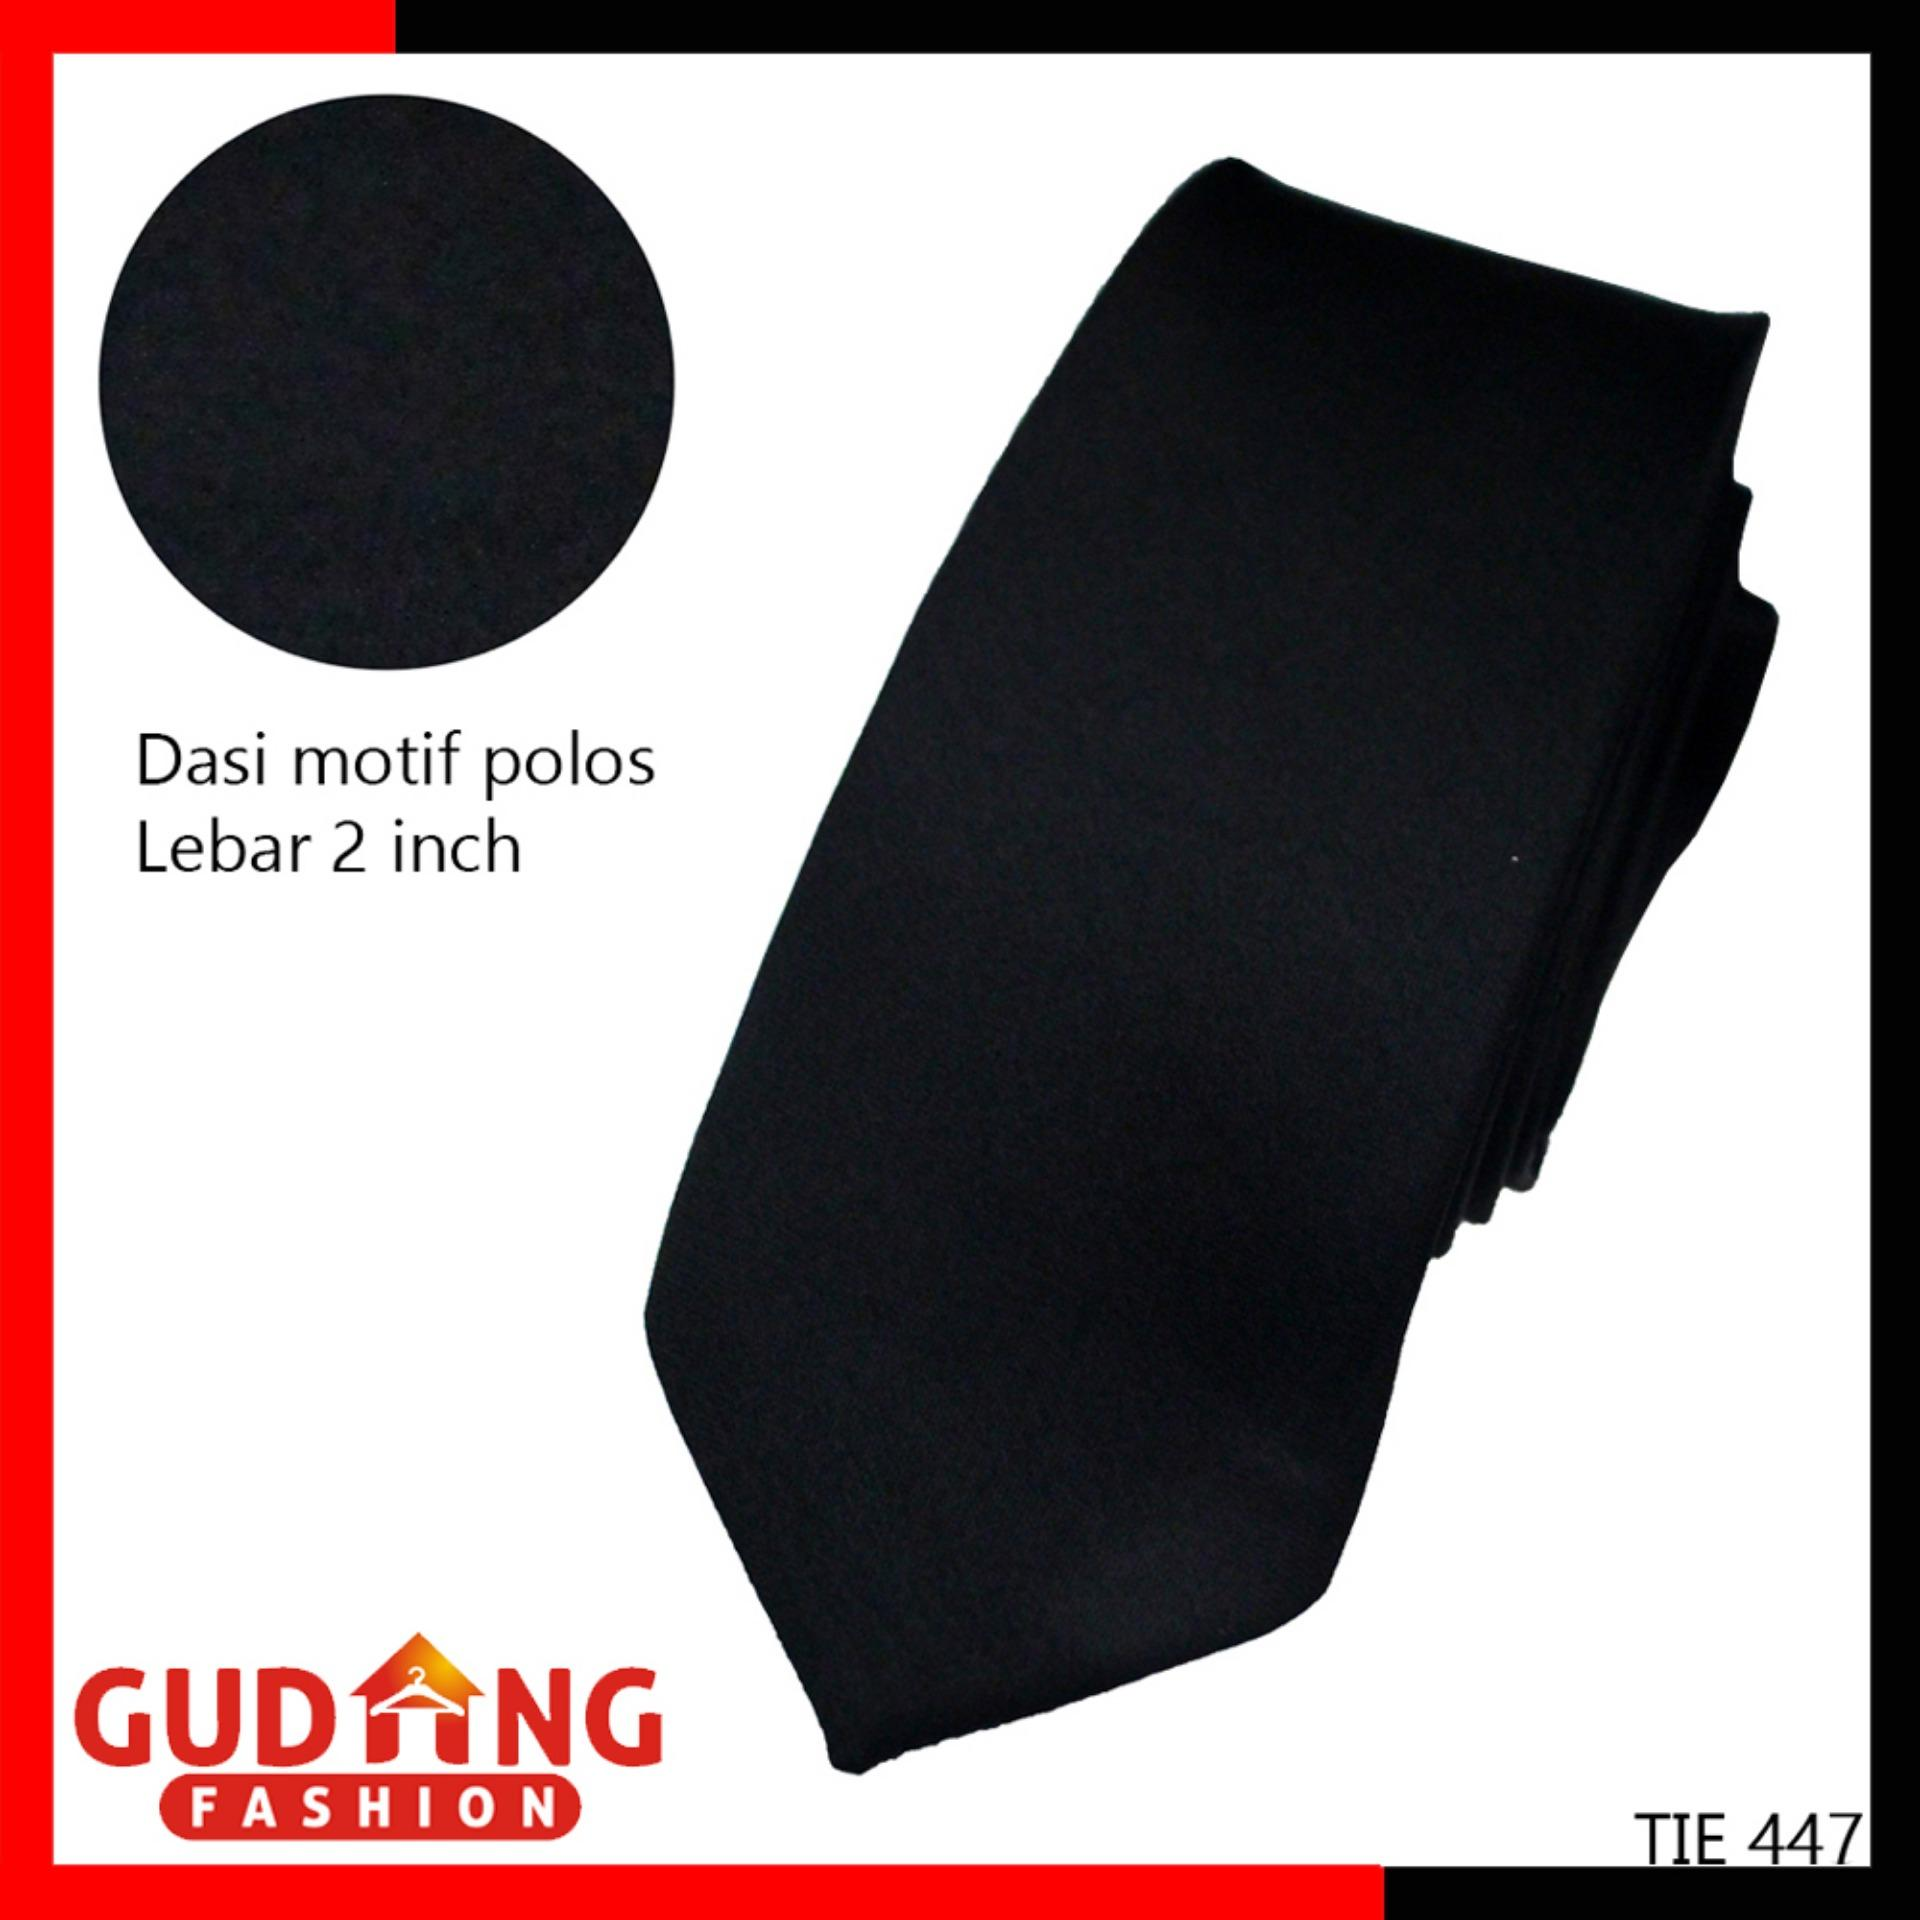 Gudang Fashion - Dasi Slimfit Polos 2 Inch - Hitam By Gudang Fashion.